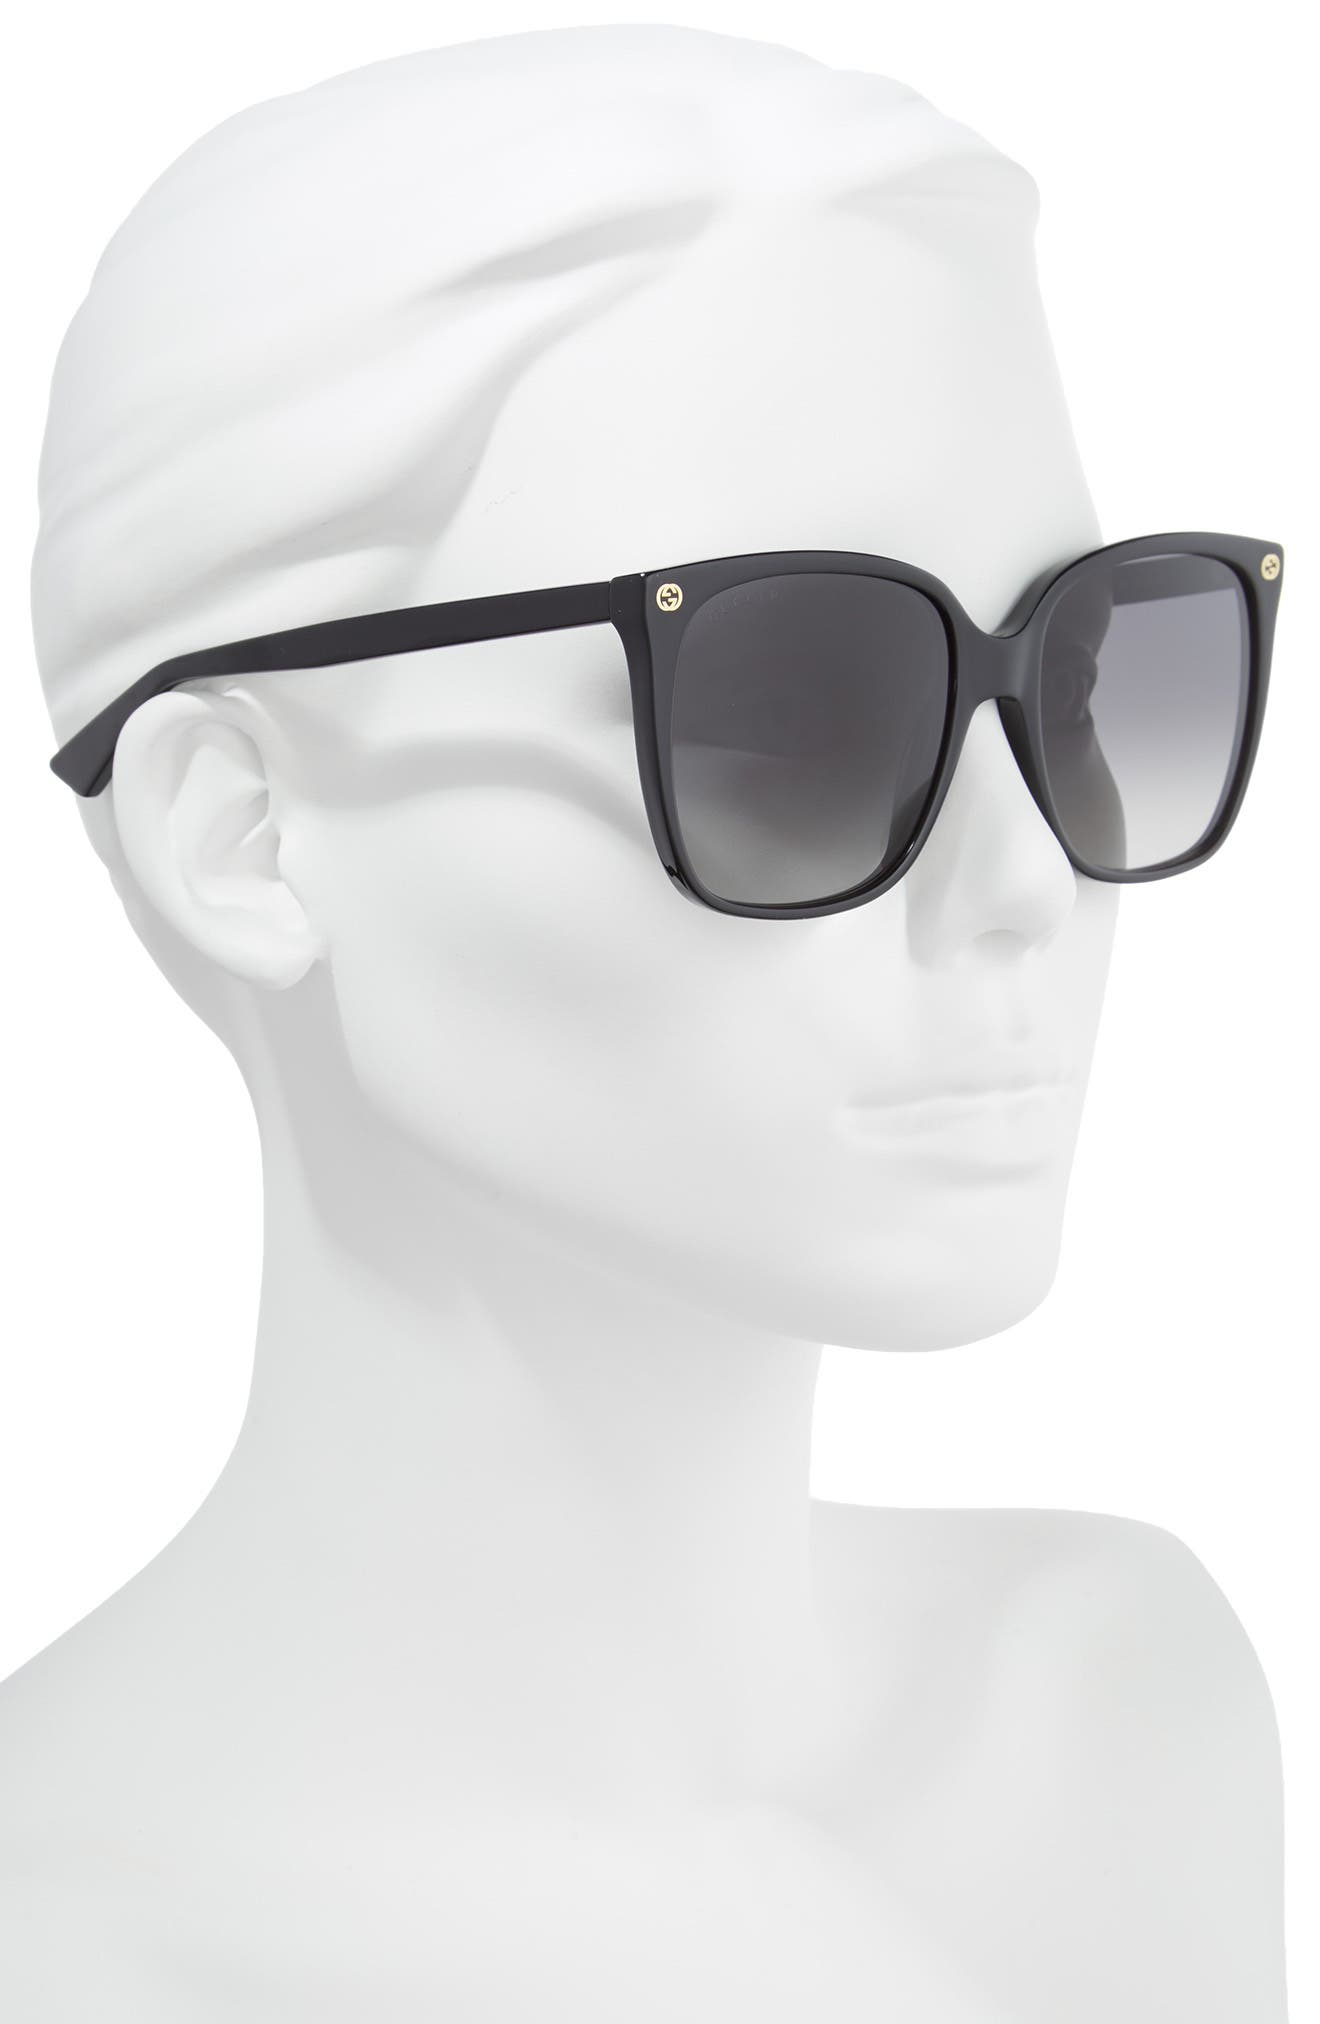 57mm Square Sunglasses,                             Alternate thumbnail 2, color,                             Shiny Black